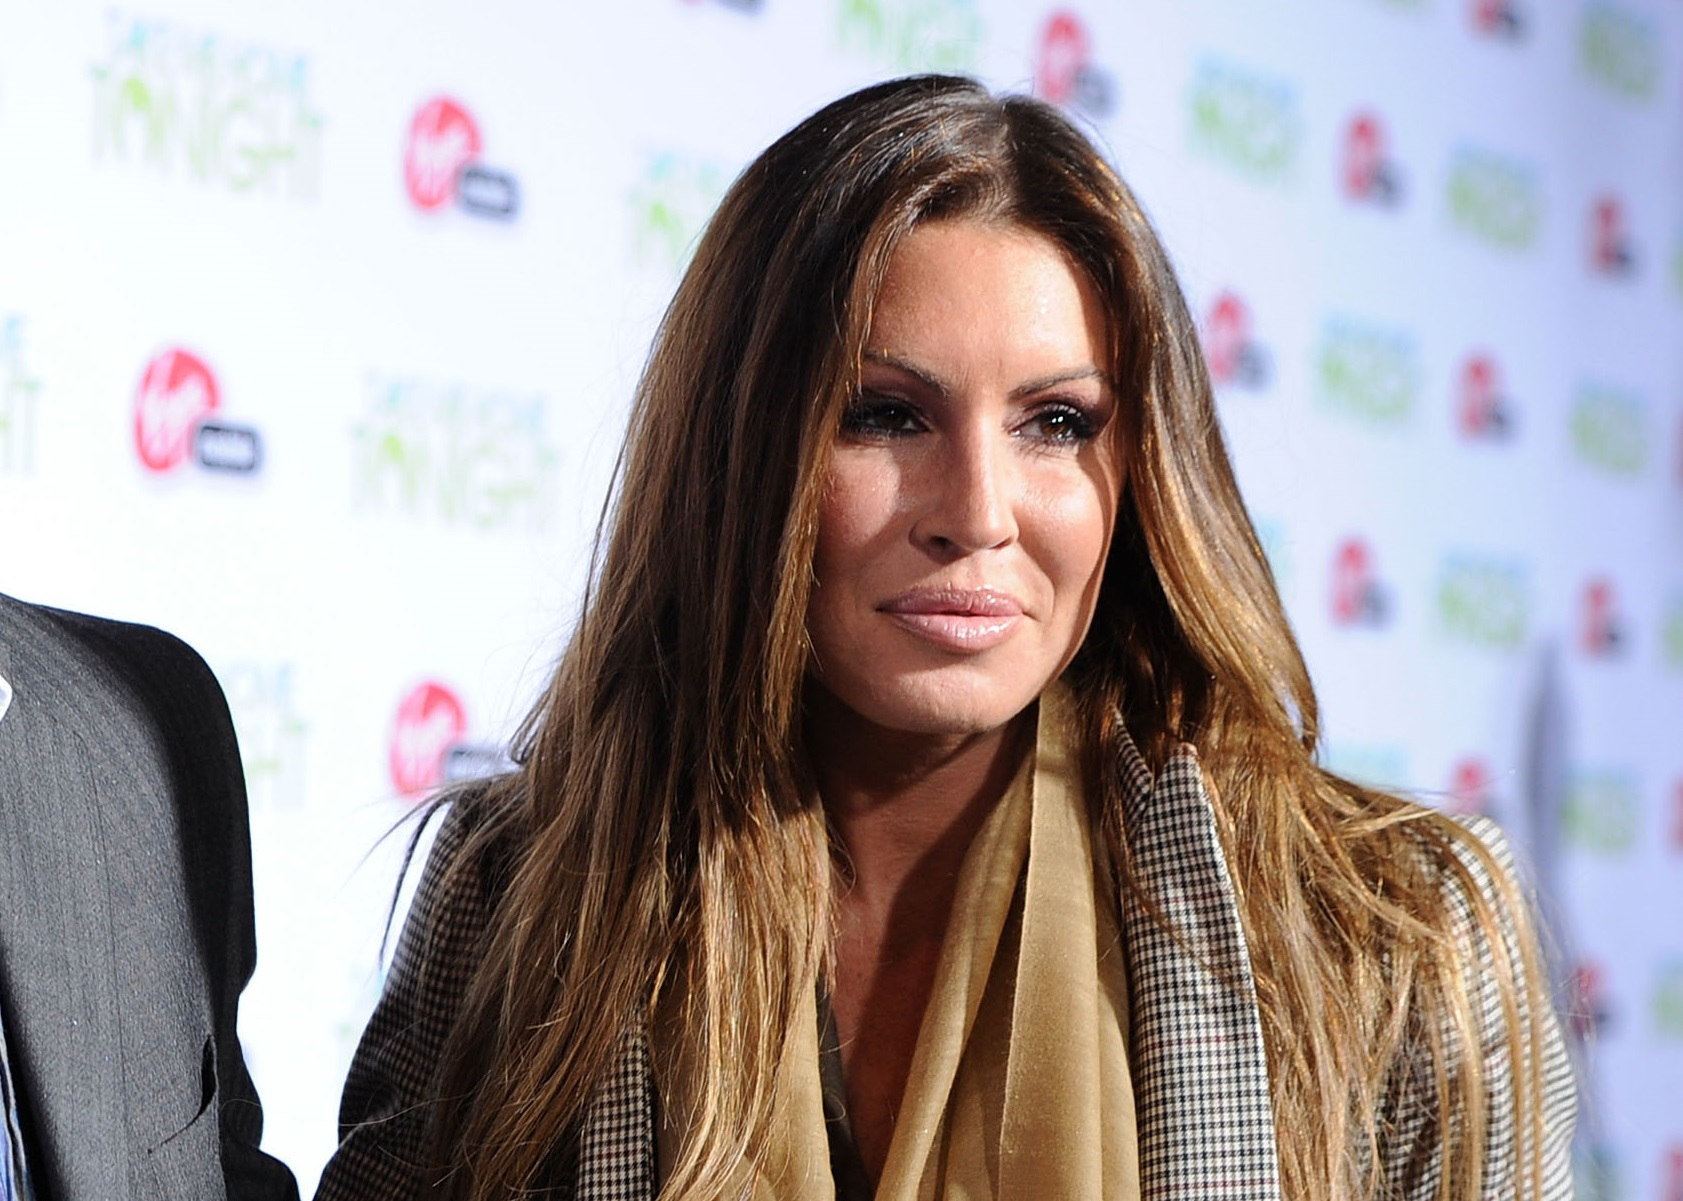 Tiger Woods Gave Mistress Rachel Uchitel Shocking Advice in Their Last Conversation, the HBO Documentary Says